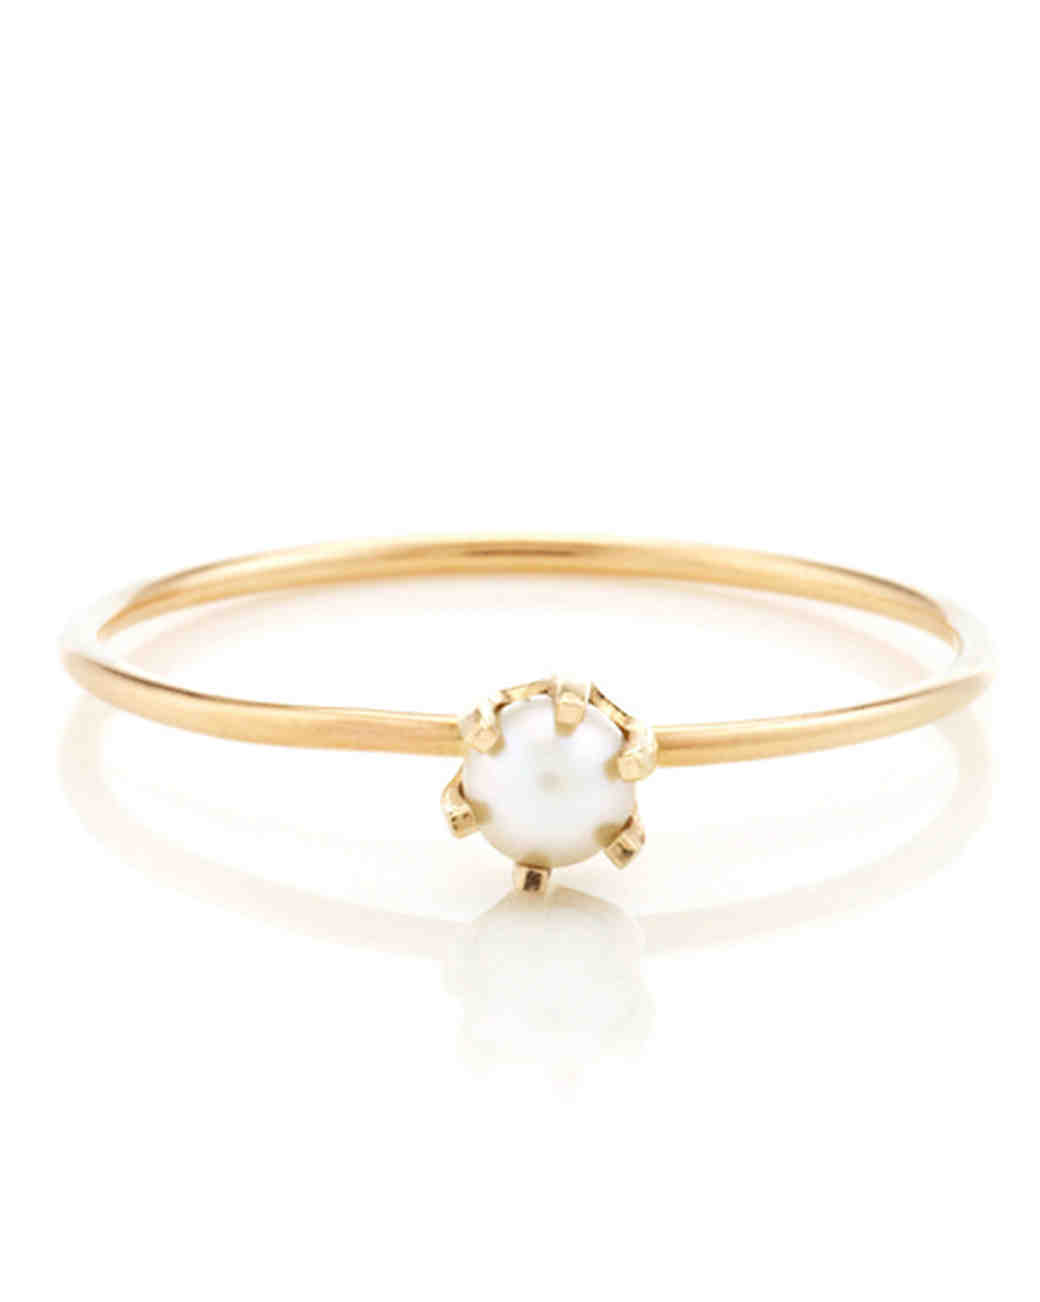 Vale Pearl Engagement Ring